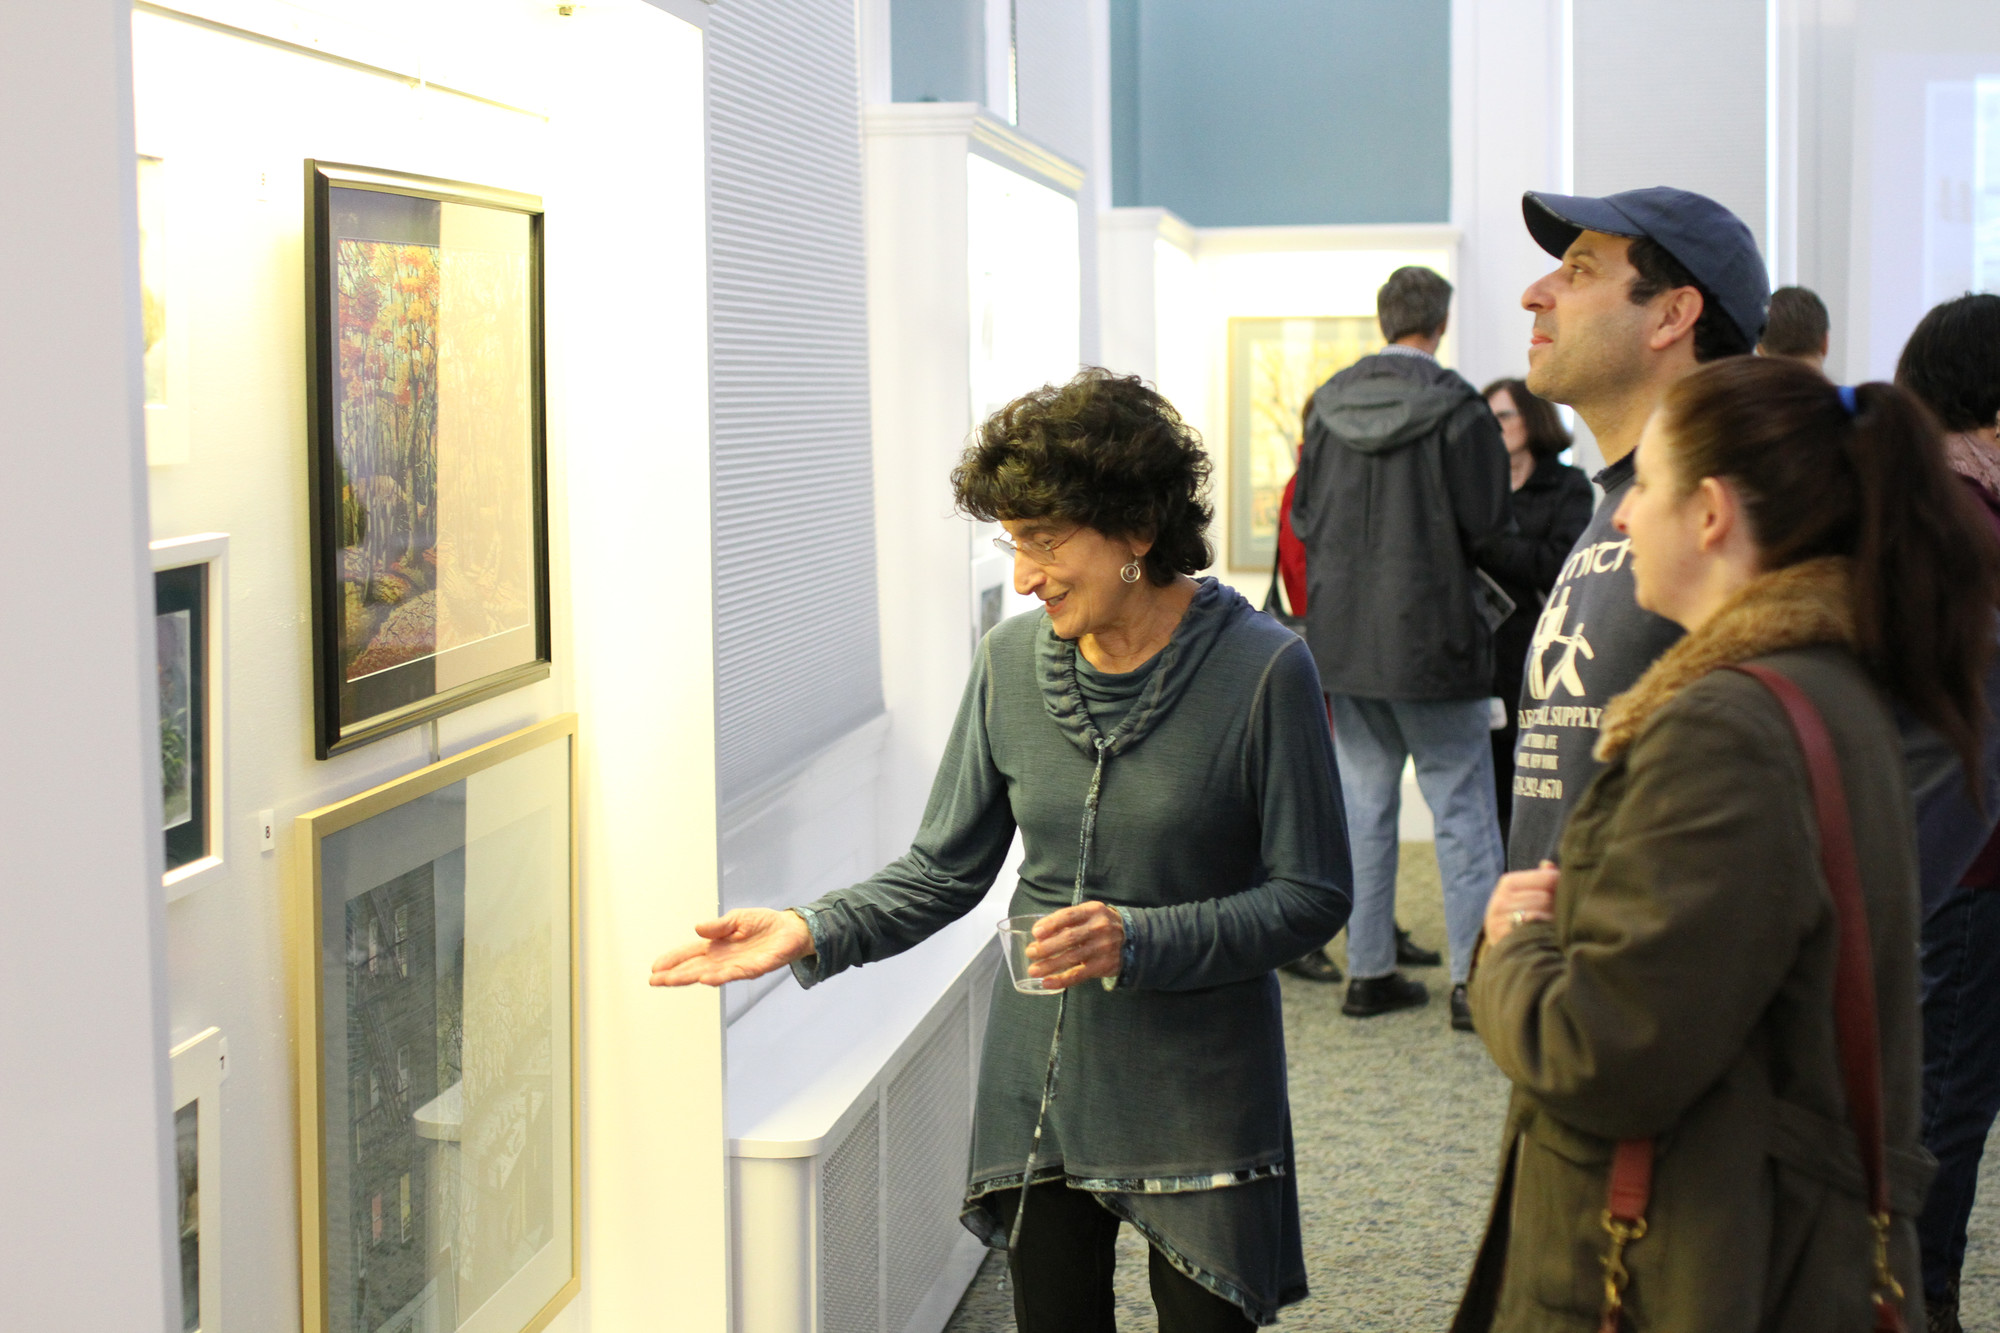 Patti Guglielmo, who worked with Bishop at East Rockaway High School, shows her son, Michael, and daughter-in-law, Corey, Bishop's artwork.